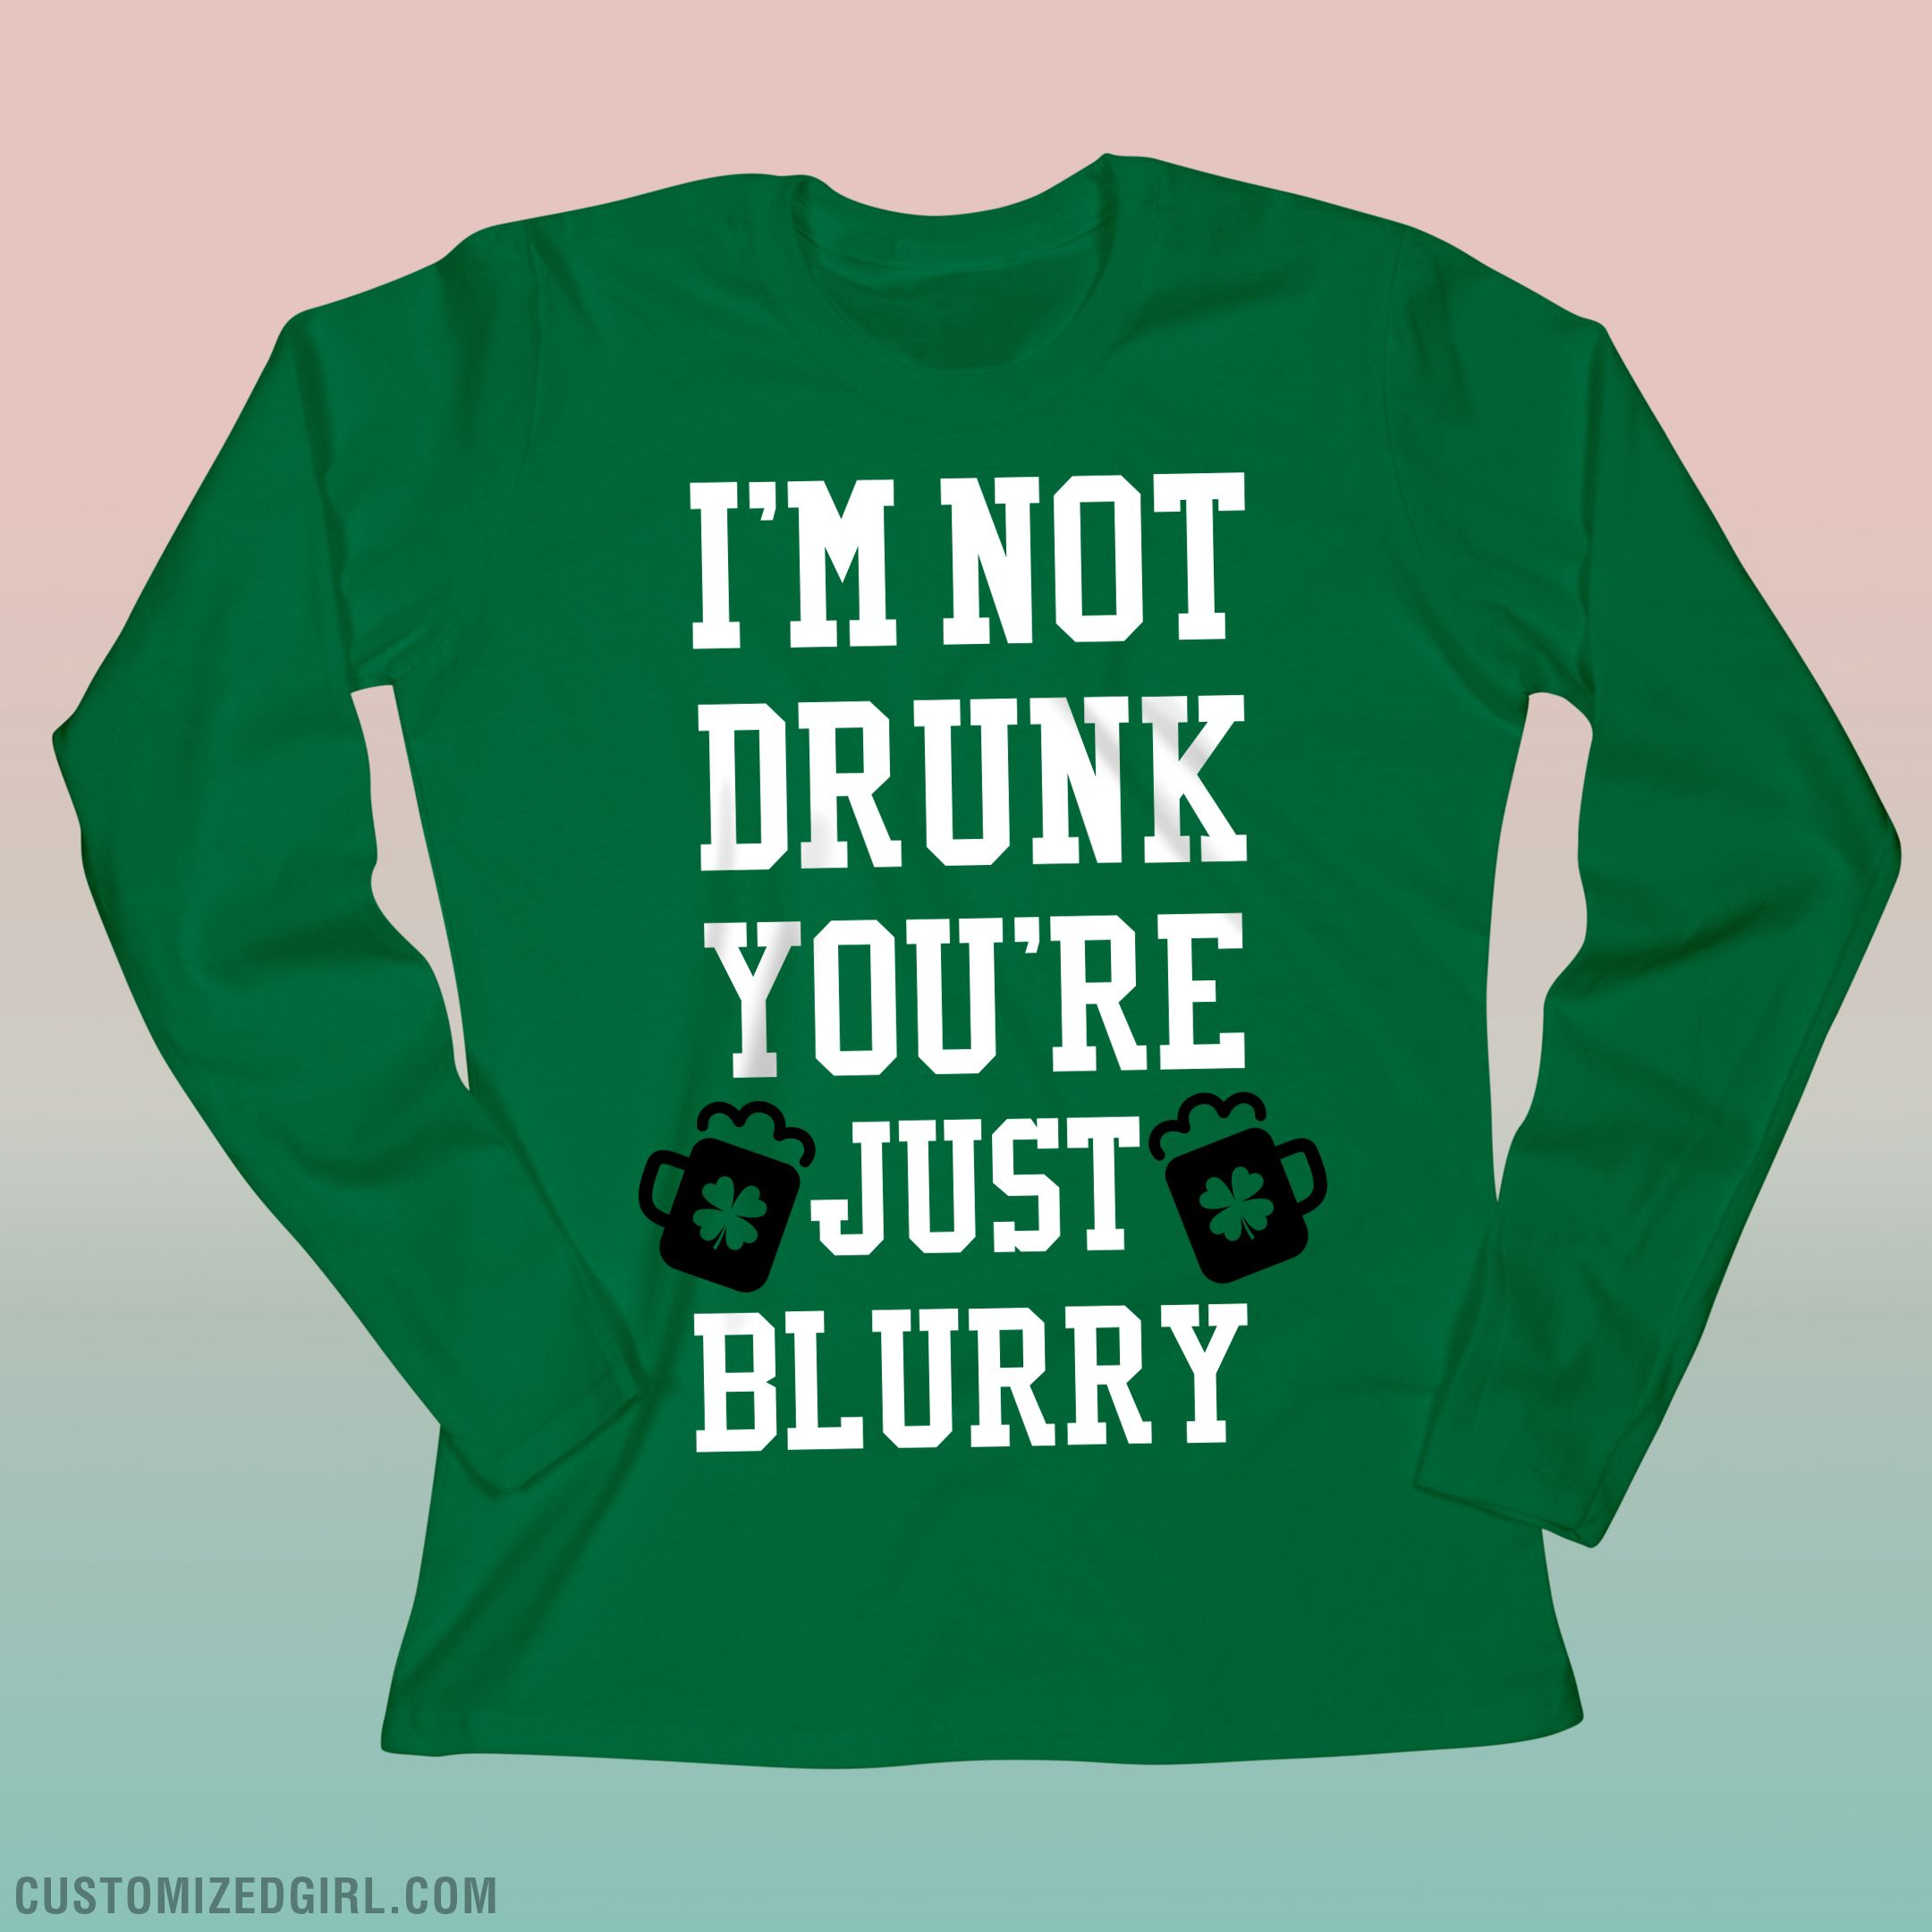 I'm not drunk you're just blurry. Snap up a funny long sleeve shirt to wear on St. Patrick's Day. Get drunk in this funny and cool tee! Your'e Irish lads will be laughing at this one. . Women's green long sleeve shirts for St Patricks Day! #stpatricksday #green #customizedgirl